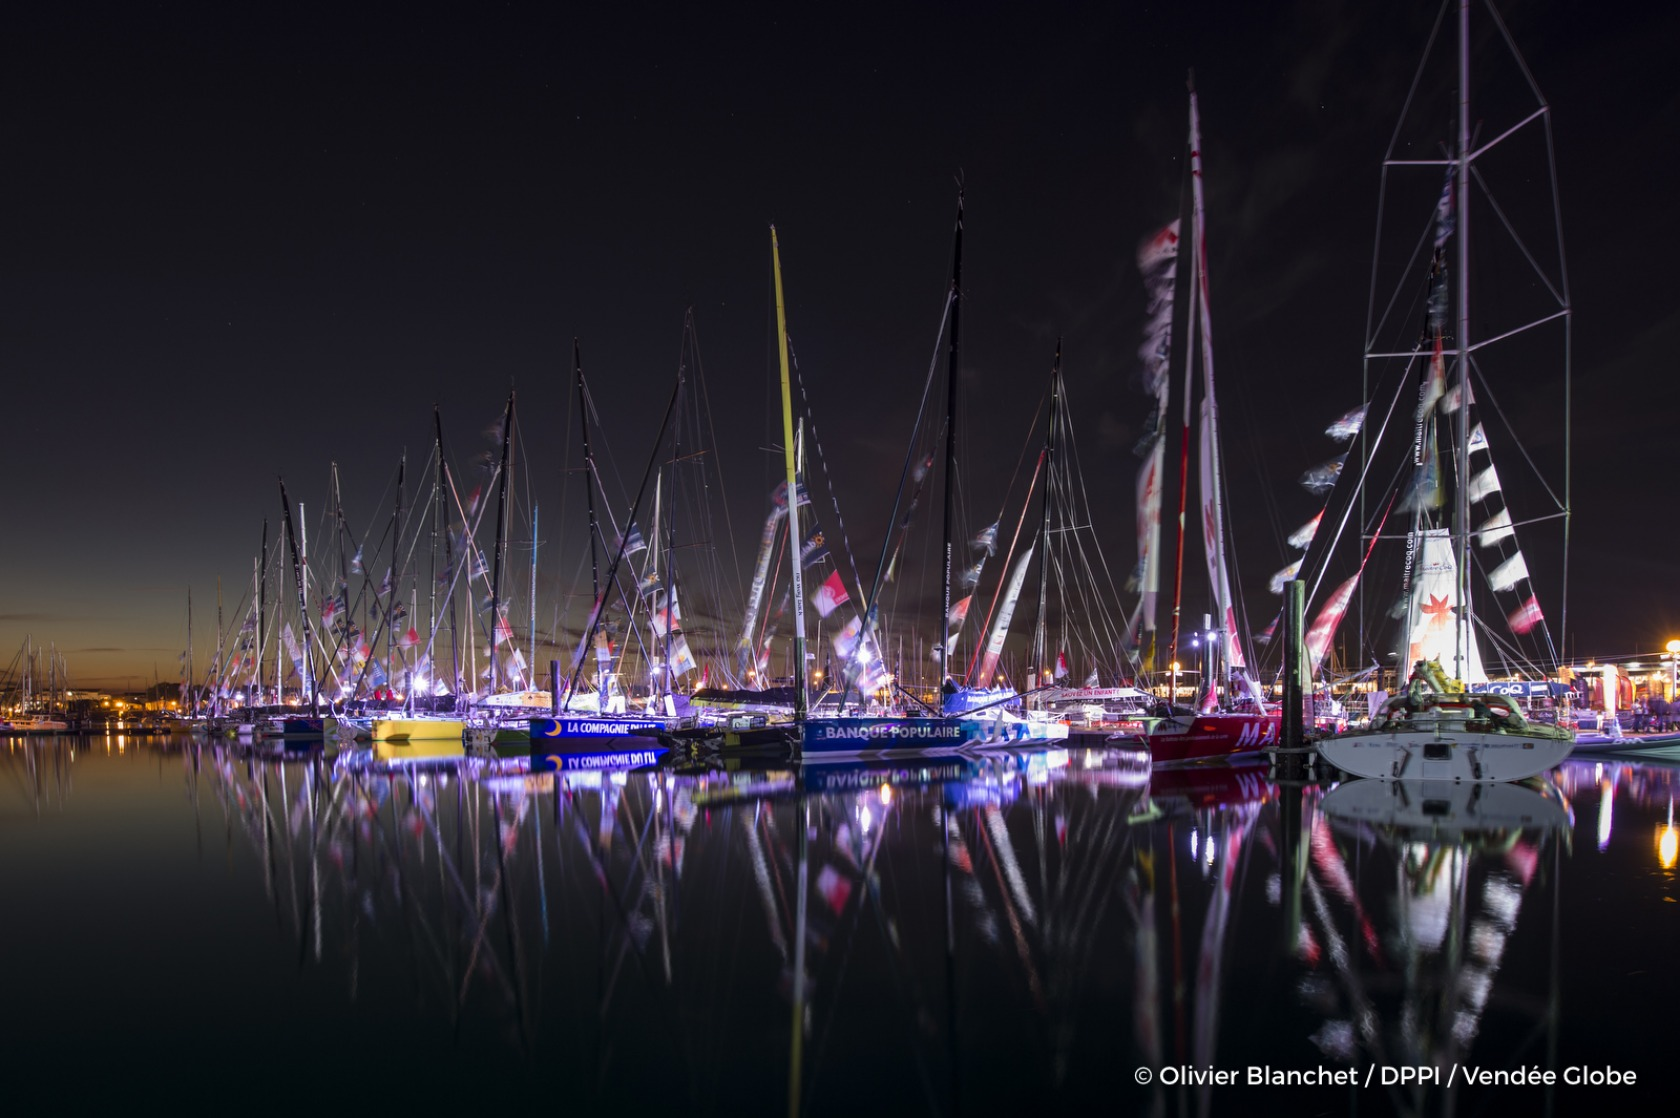 Illustration of pontoons by night, during prestart of the Vendee Globe, in Les Sables d'Olonne, France, on October 27th, 2016 - Photo Olivier Blanchet / DPPI / Vendée GlobeIllustration de nuit des pontons du Vendée Globe, le 27 Octobre 2016 - Photo Oliv